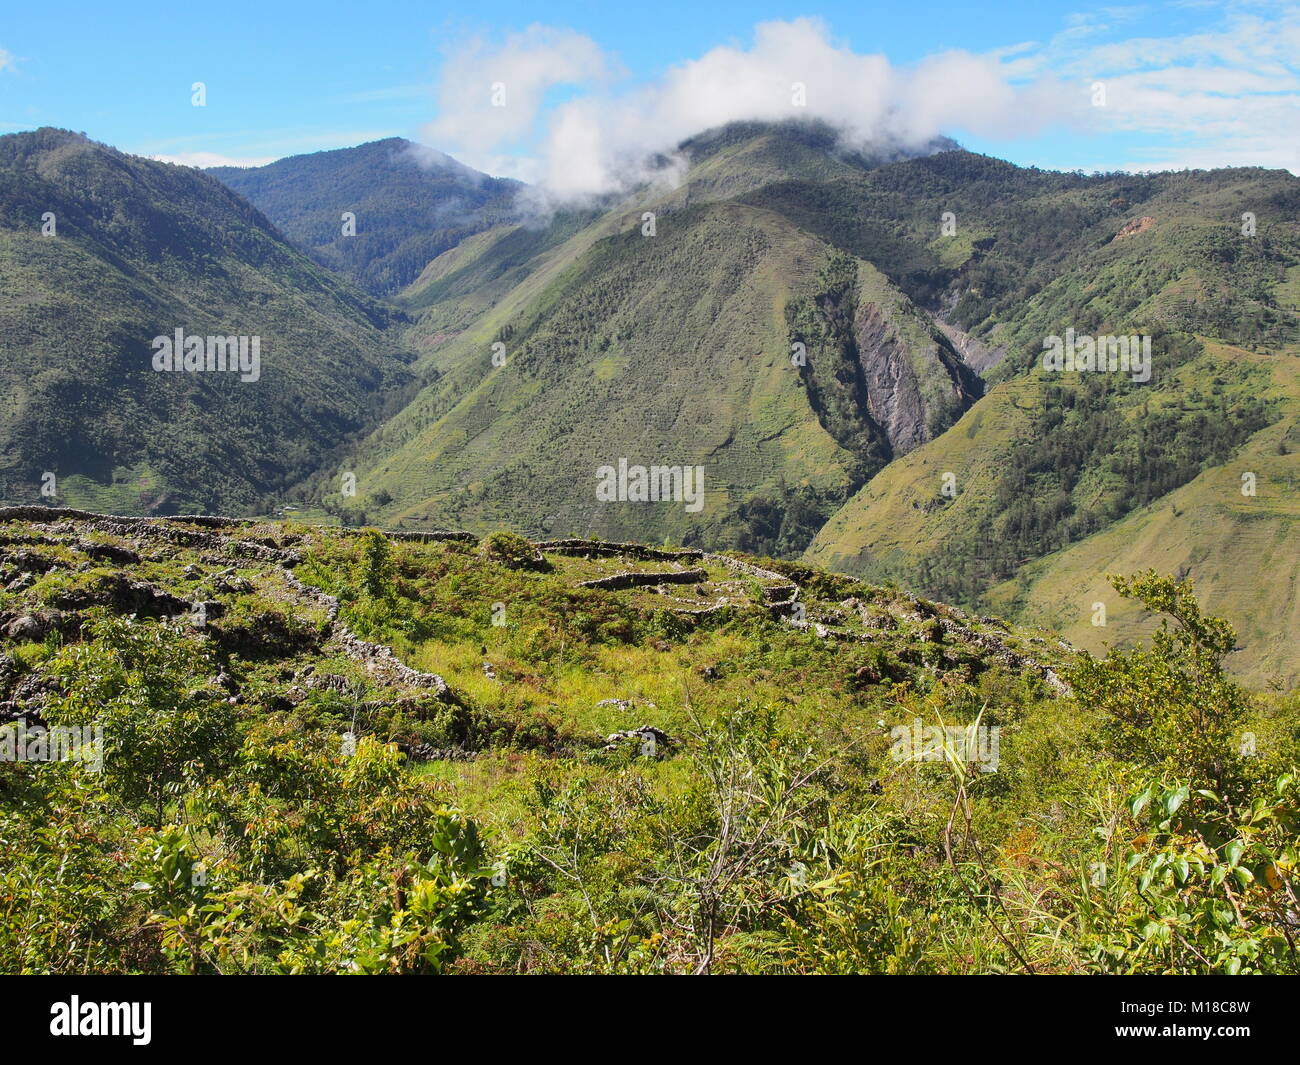 Gardens bordered by rocks in the Baliem valley, West Papua, Indonesia - Stock Image